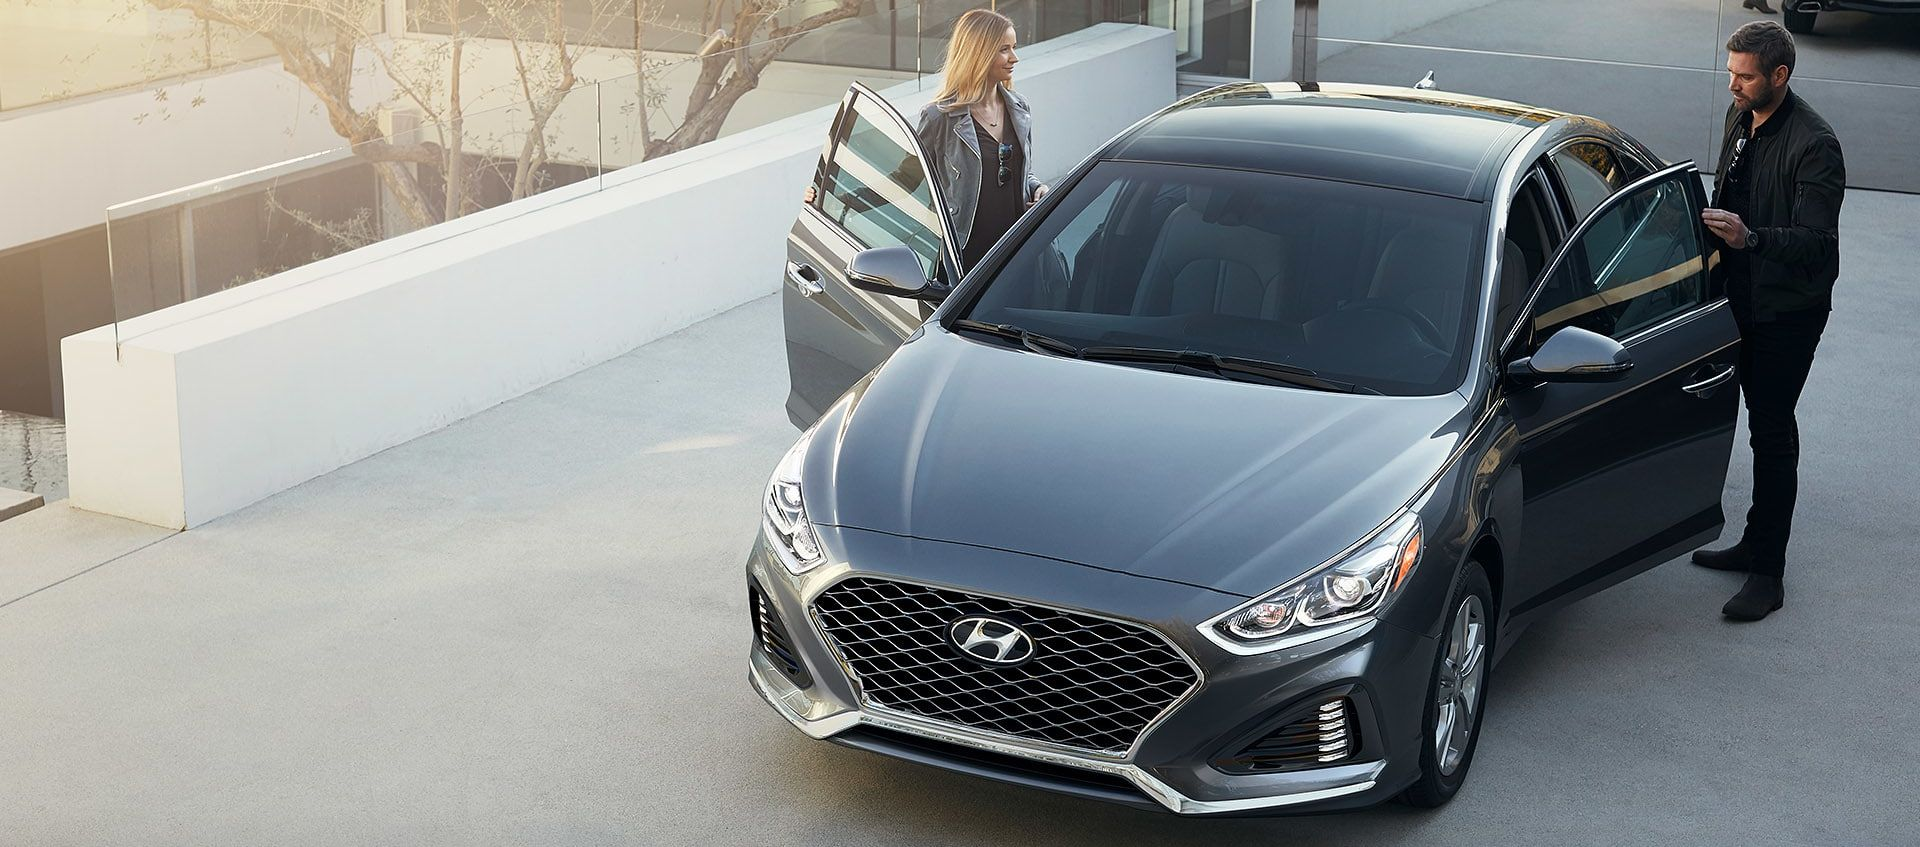 2019 Hyundai Sonata for Lease near Laurel, MD